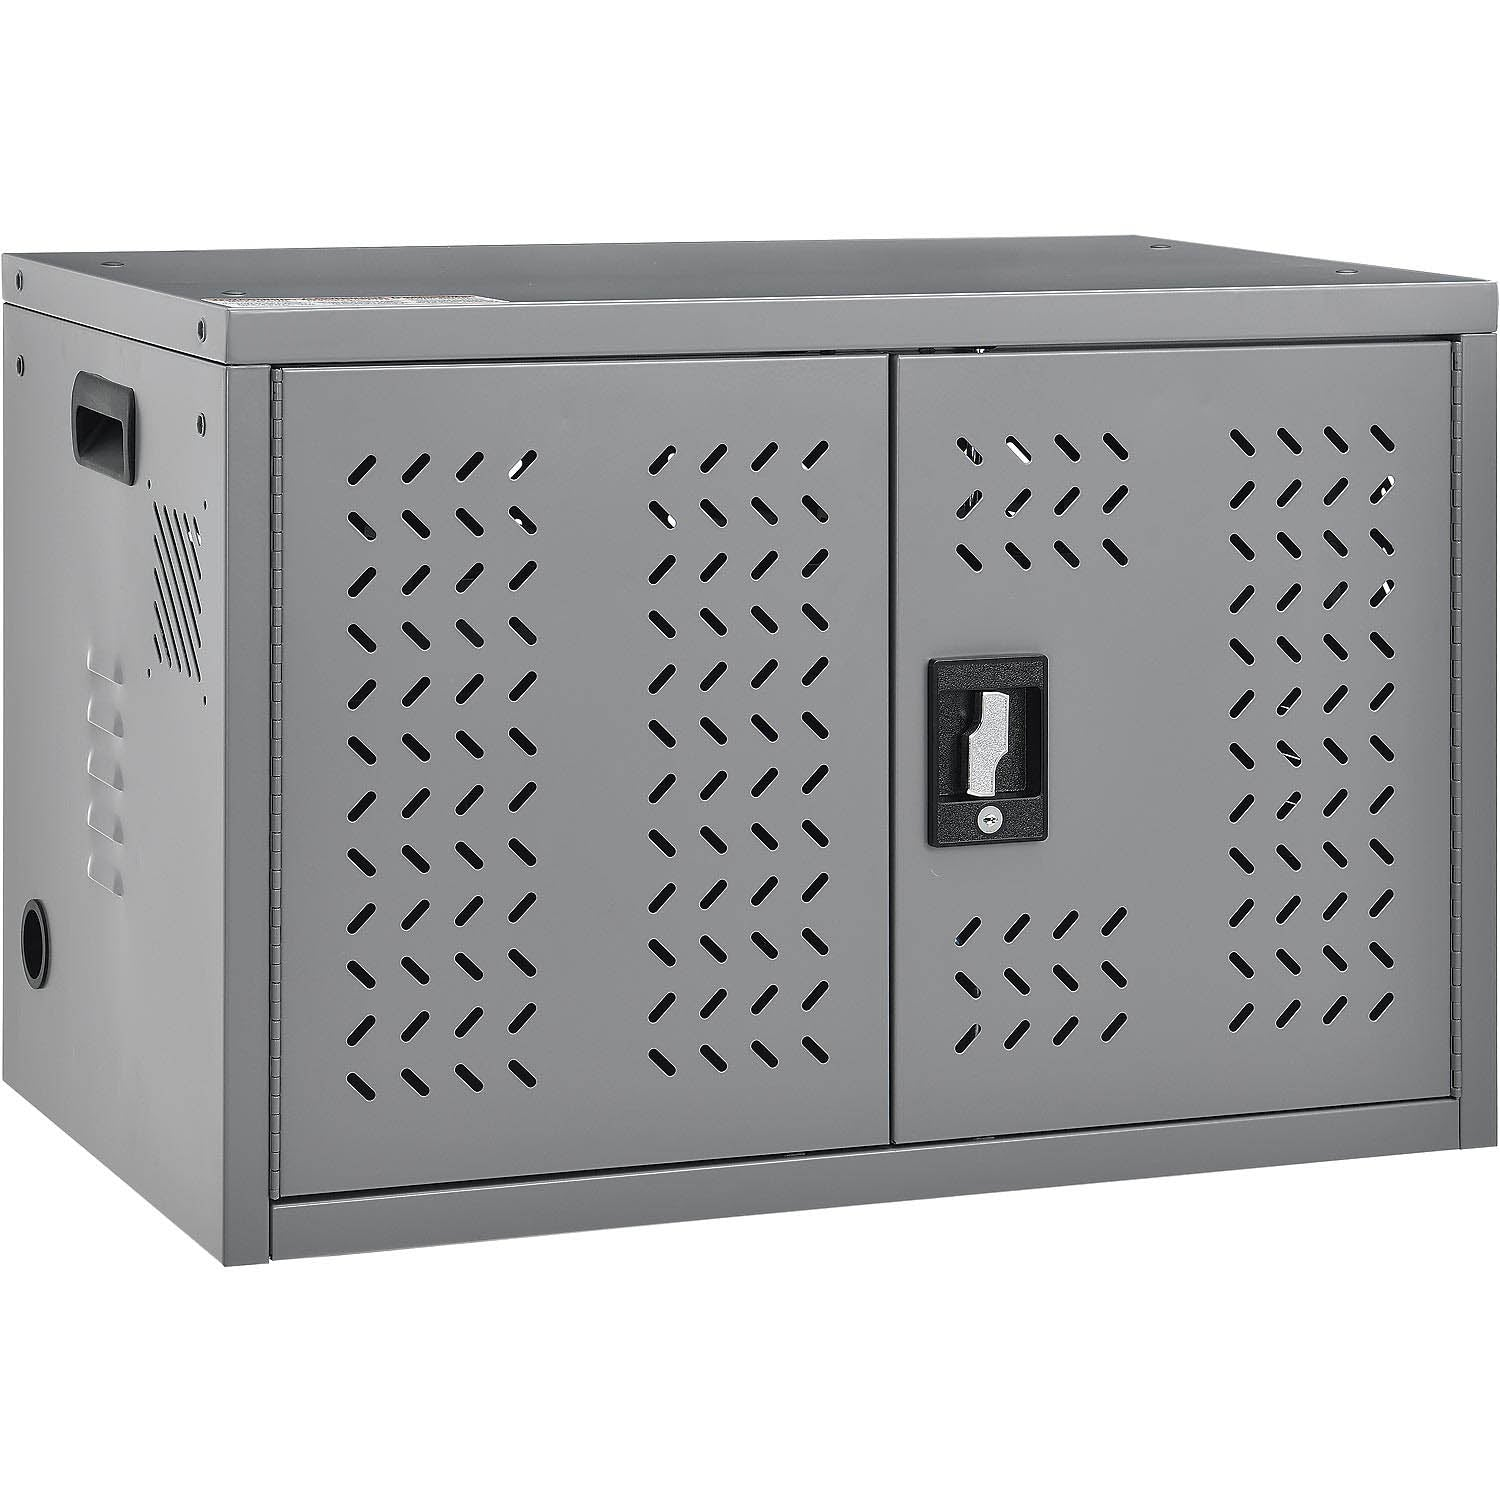 Portable charging cabinet all steel constructions